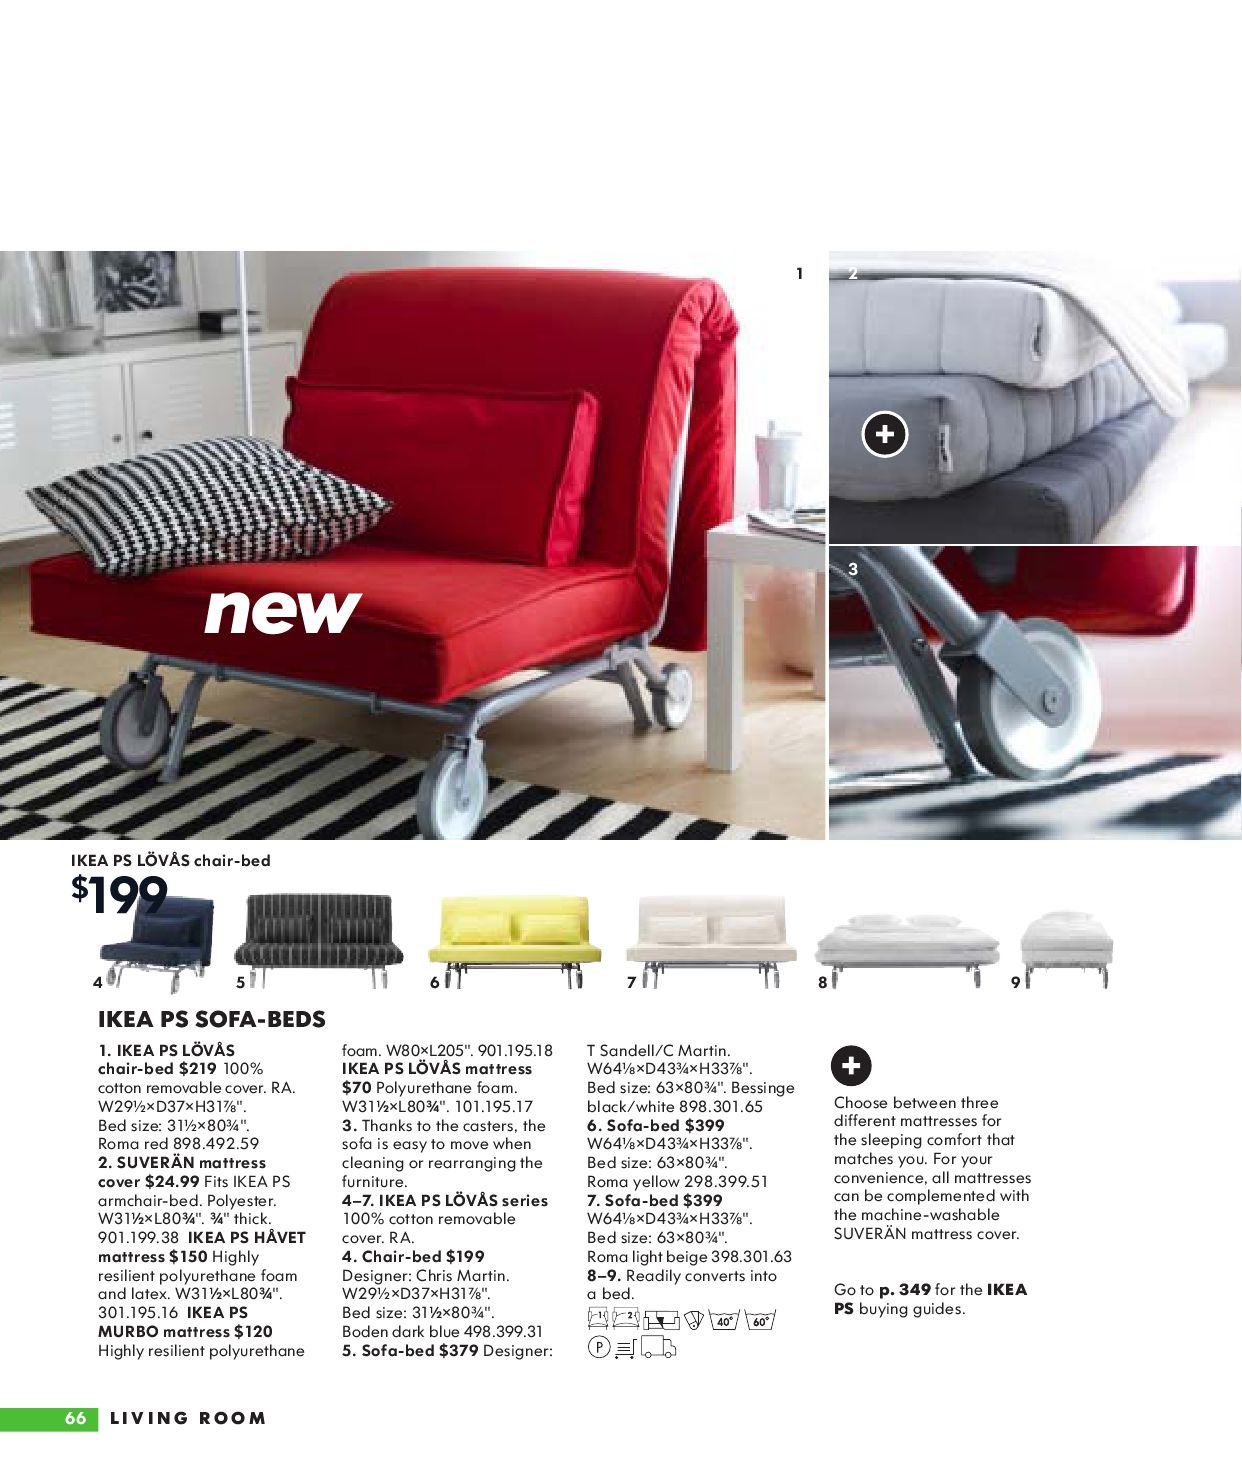 IKEA 2009 catalogue by Muhammad Mansour - issuu